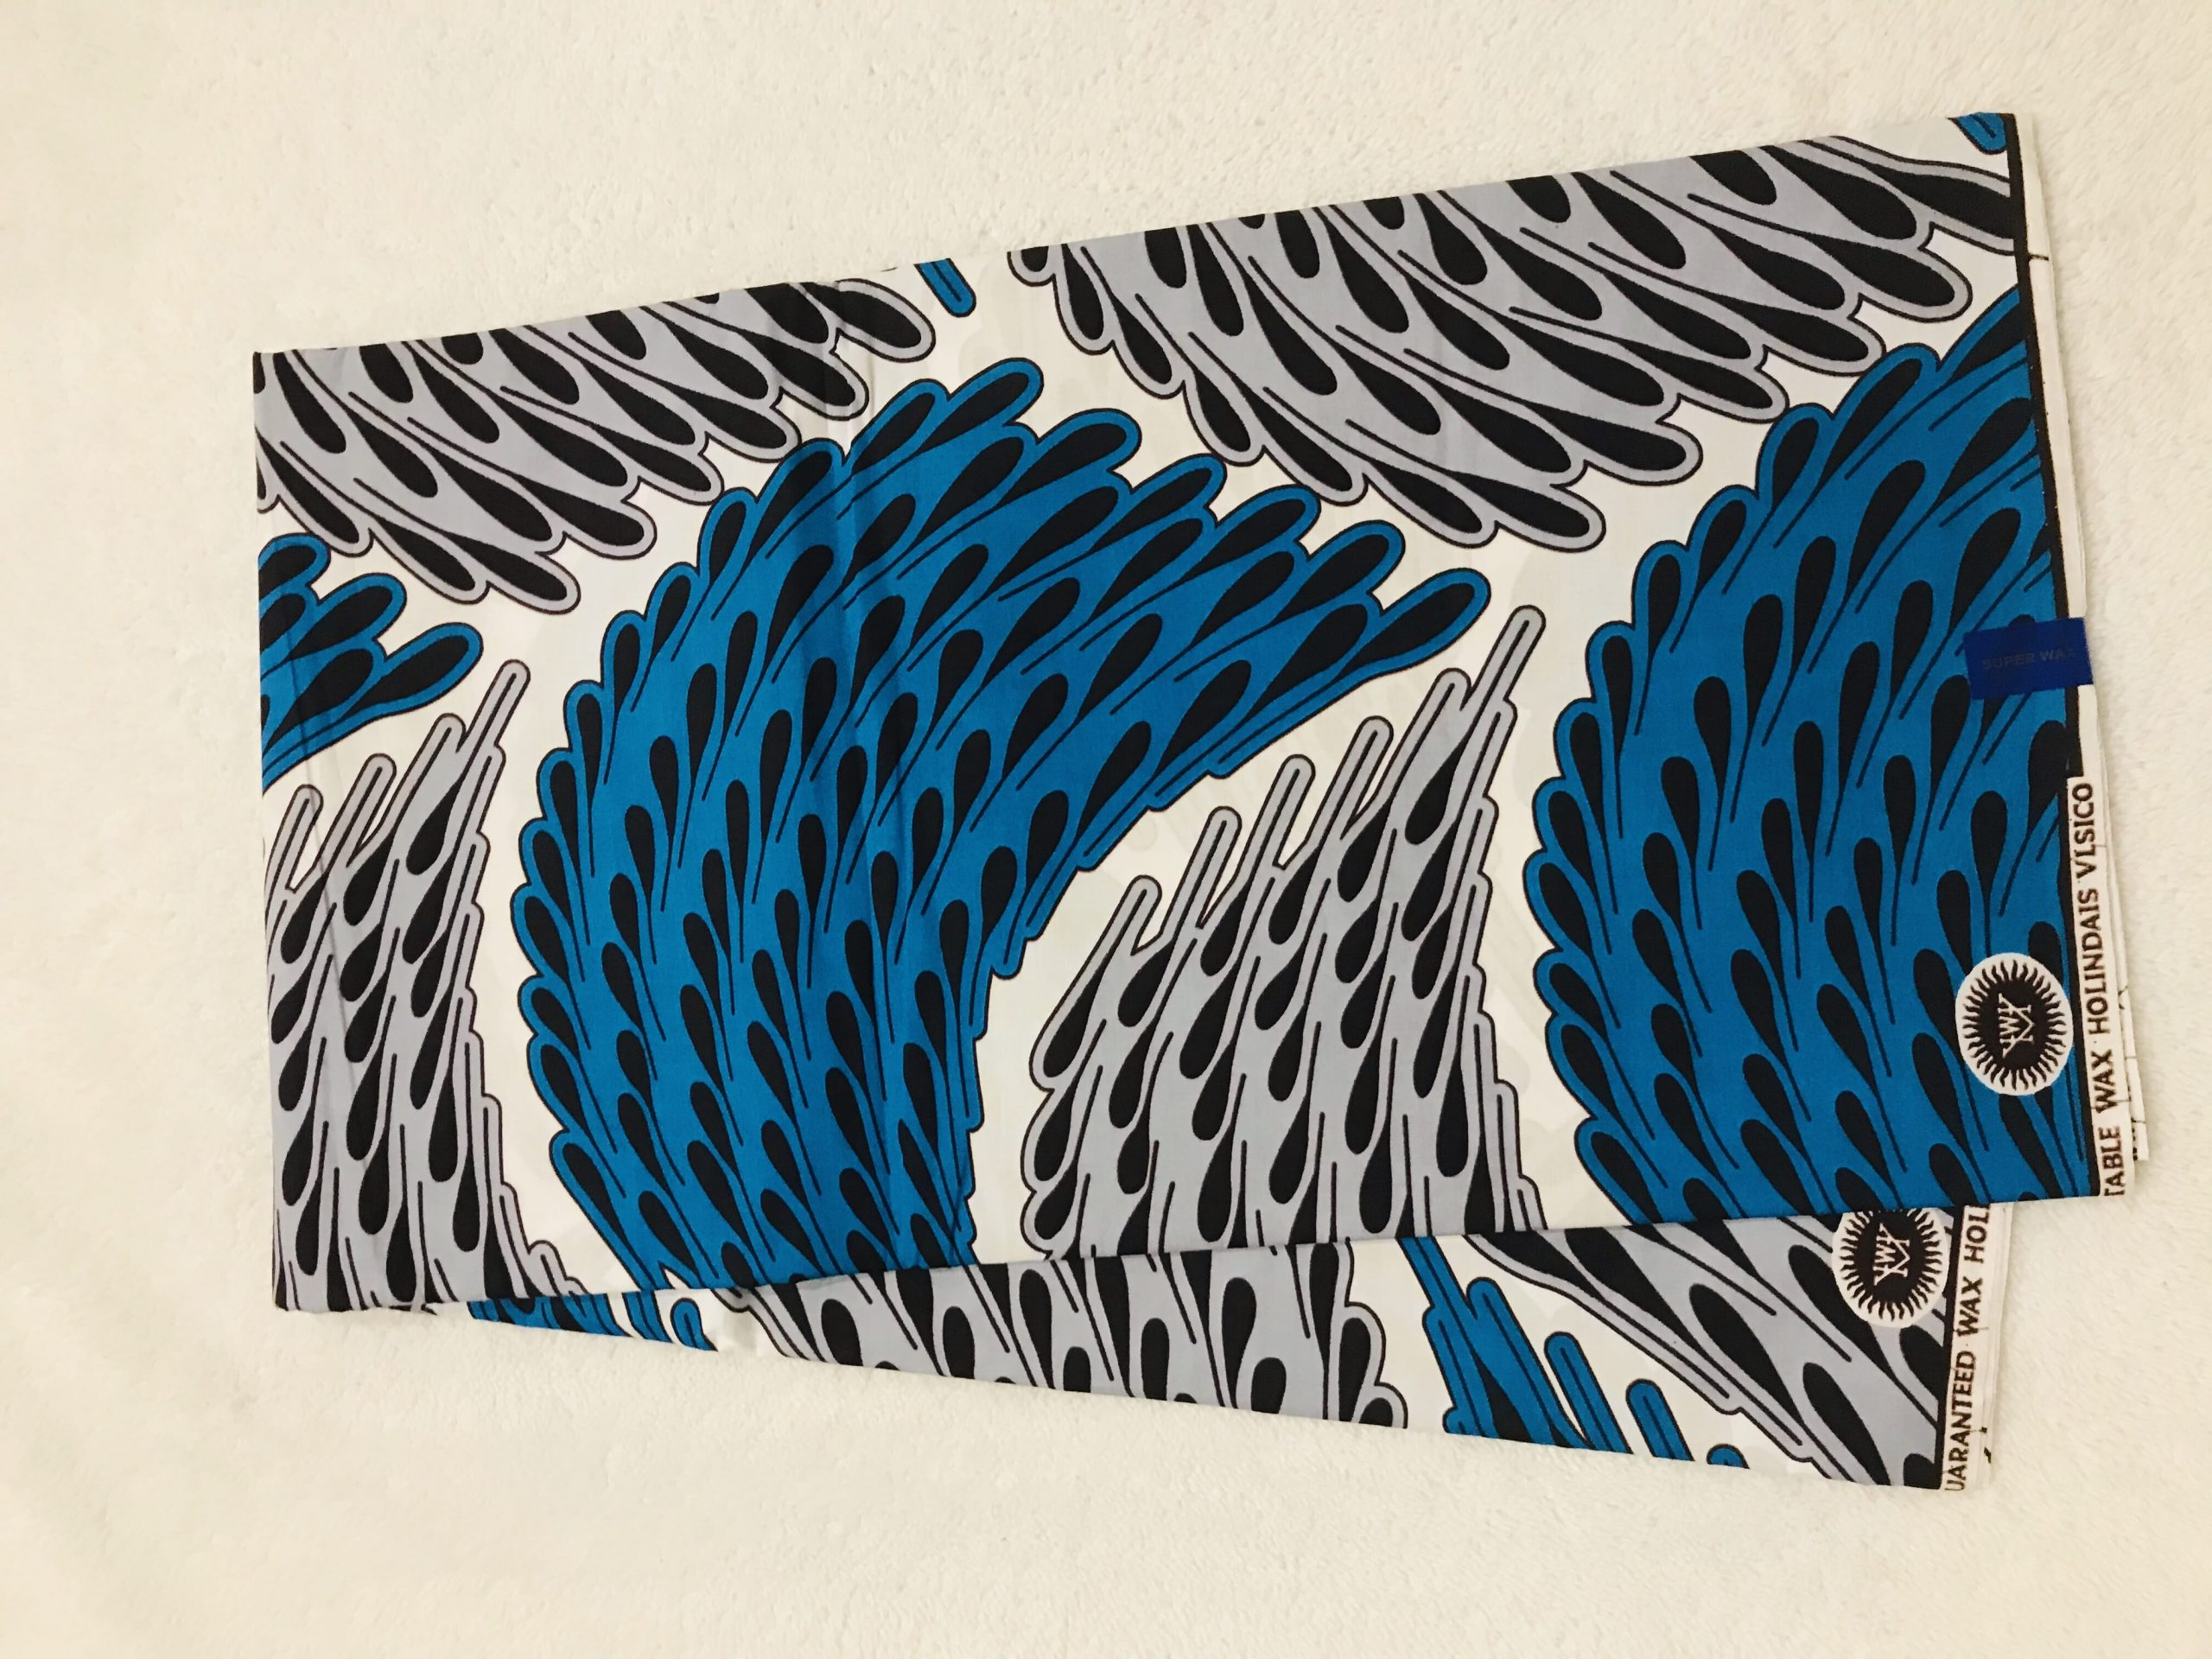 African Wax 6 yards blue gray and white rain dropped partern real African print.  Ankanra 100% cotton material.